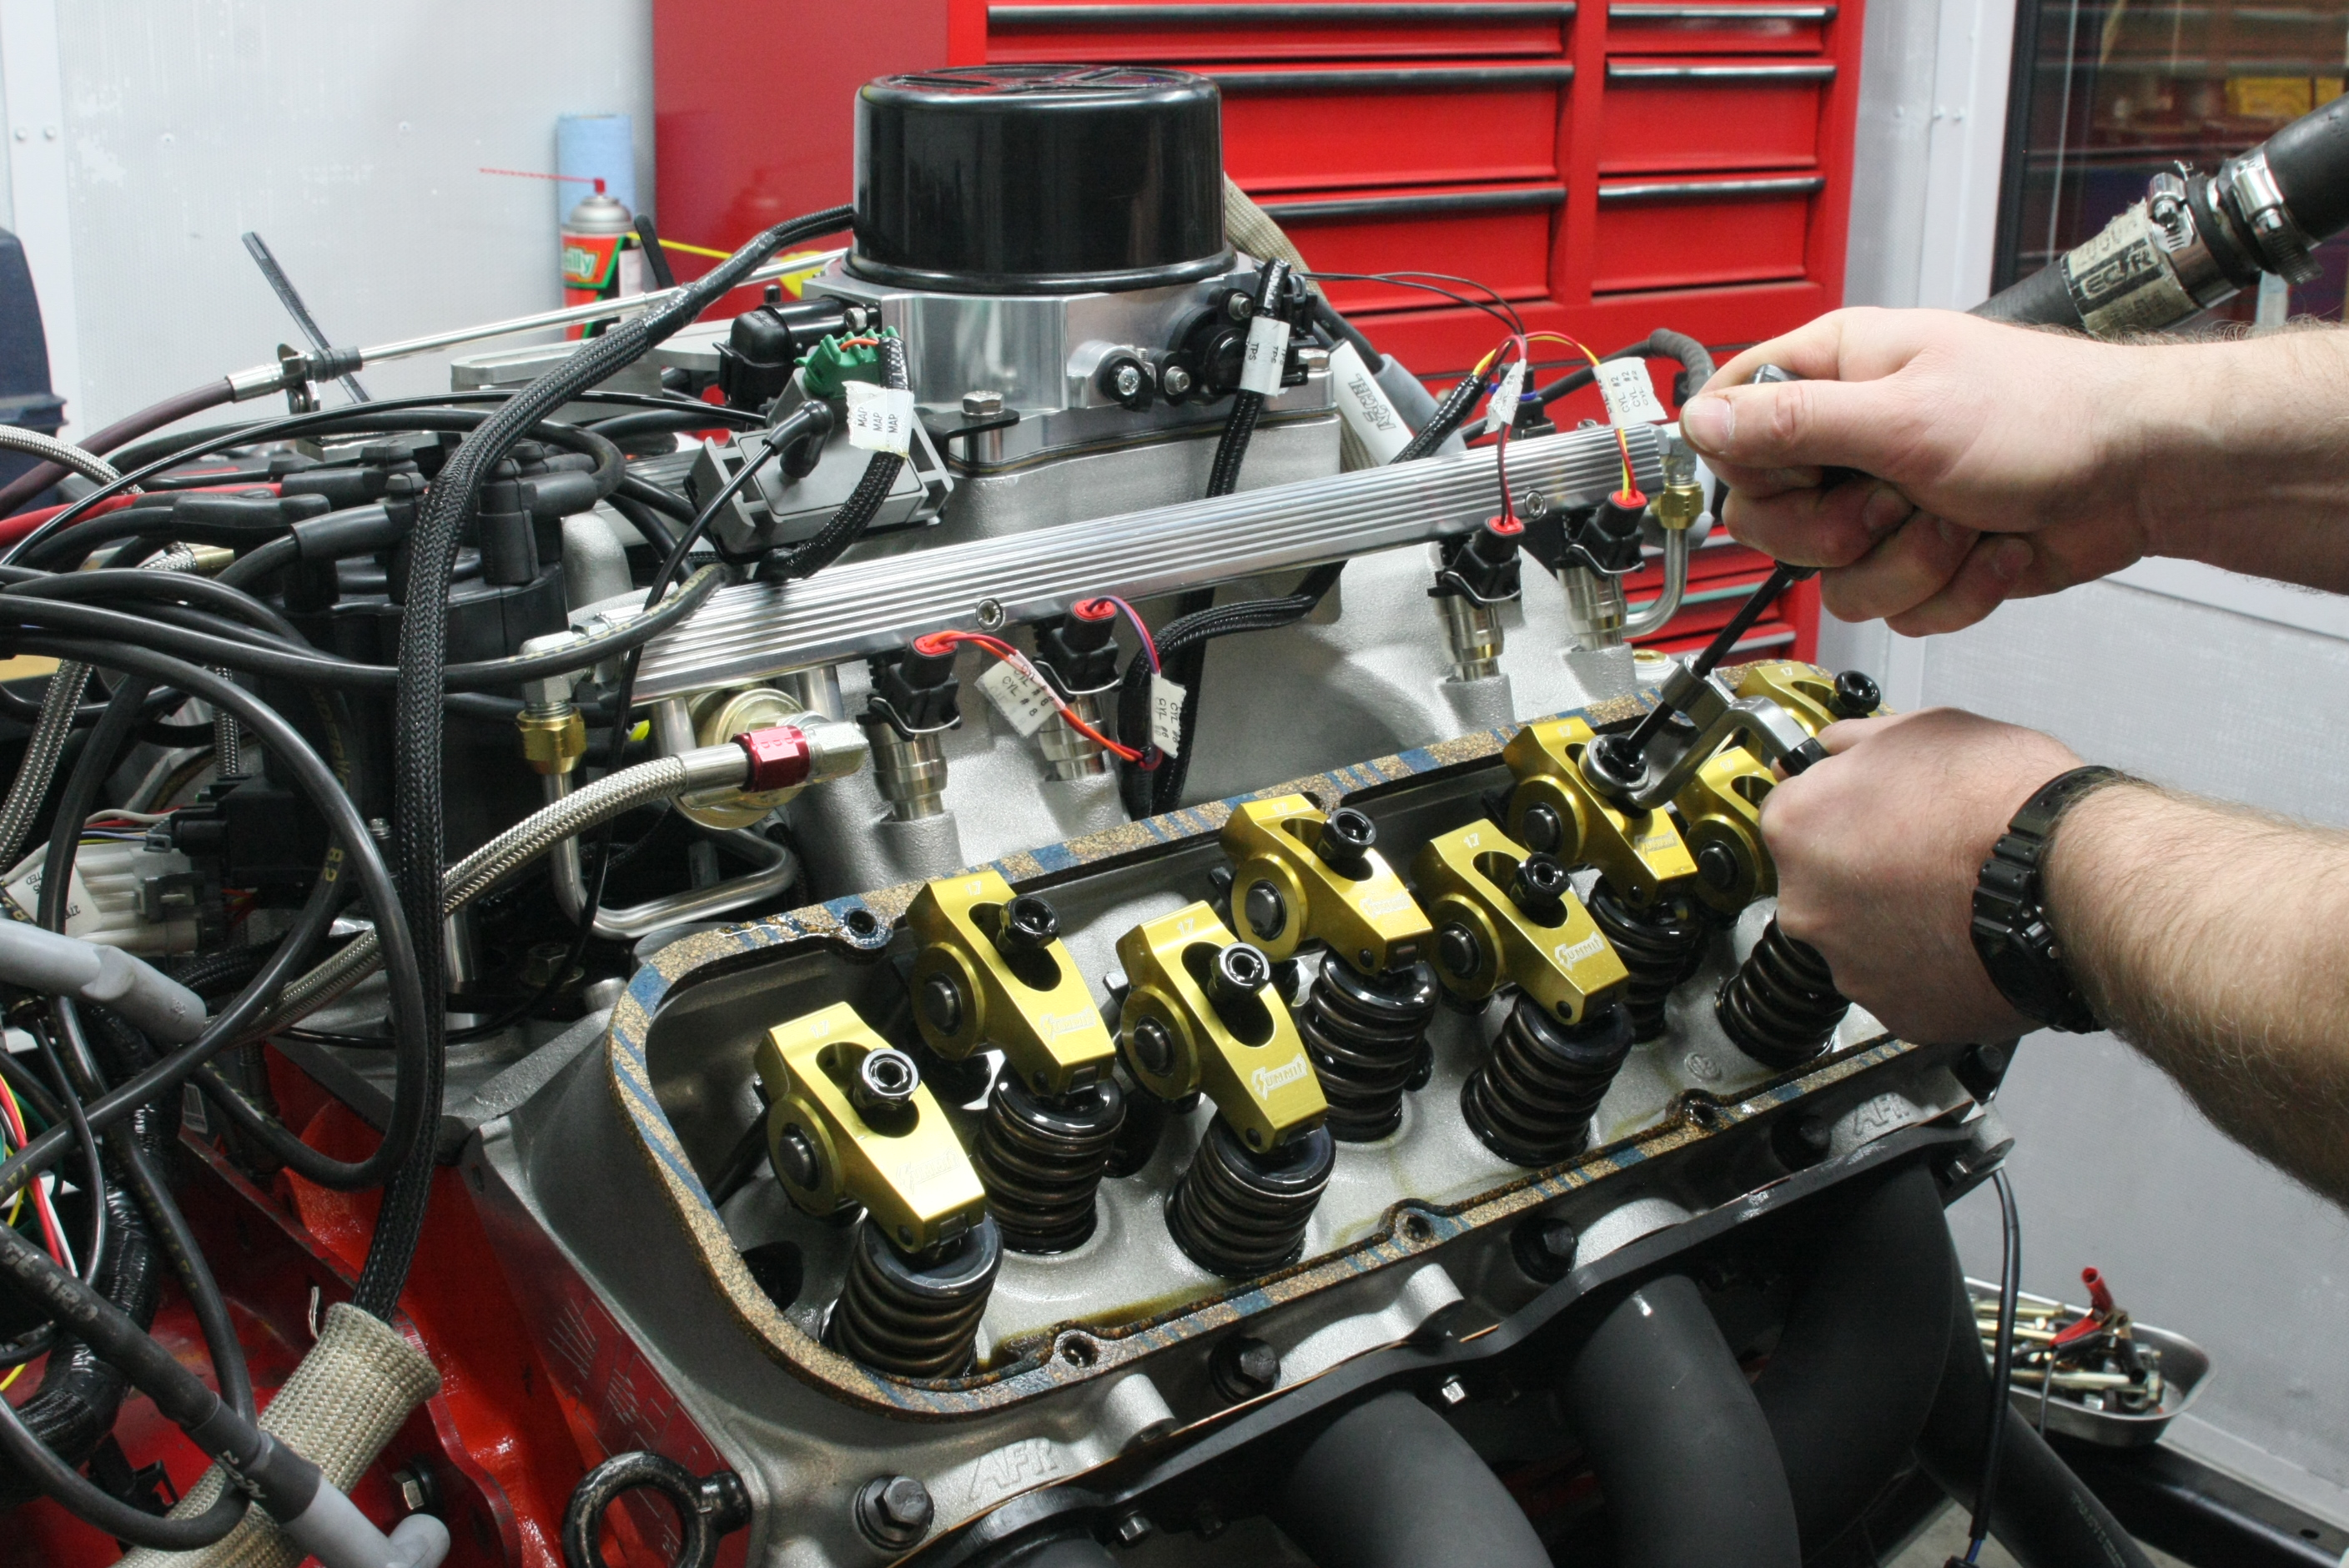 The Big Torque: Hardcore Horsepower Builds a Big Block Chevy That